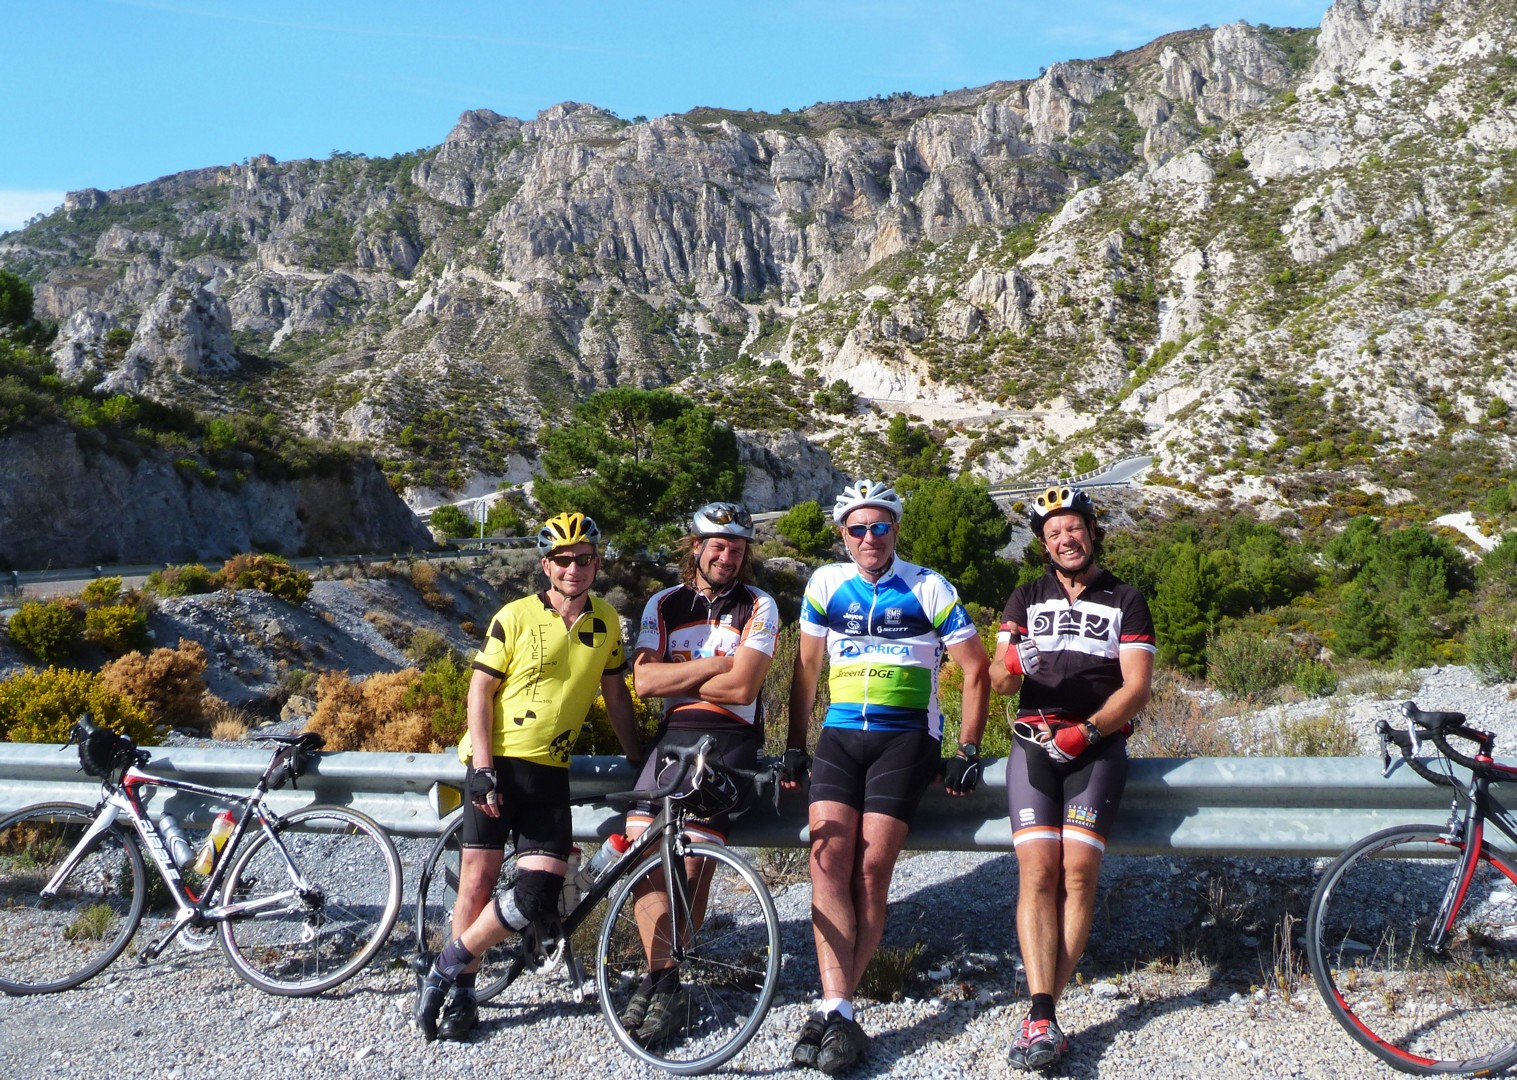 Cabo-de-gata-southern-spain-andalucia-cape-to-cape-traverse-guided-road-cycling-holiday.jpg - Southern Spain - Andalucia - Cape to Cape Traverse - Guided Road Cycling Holiday - Road Cycling